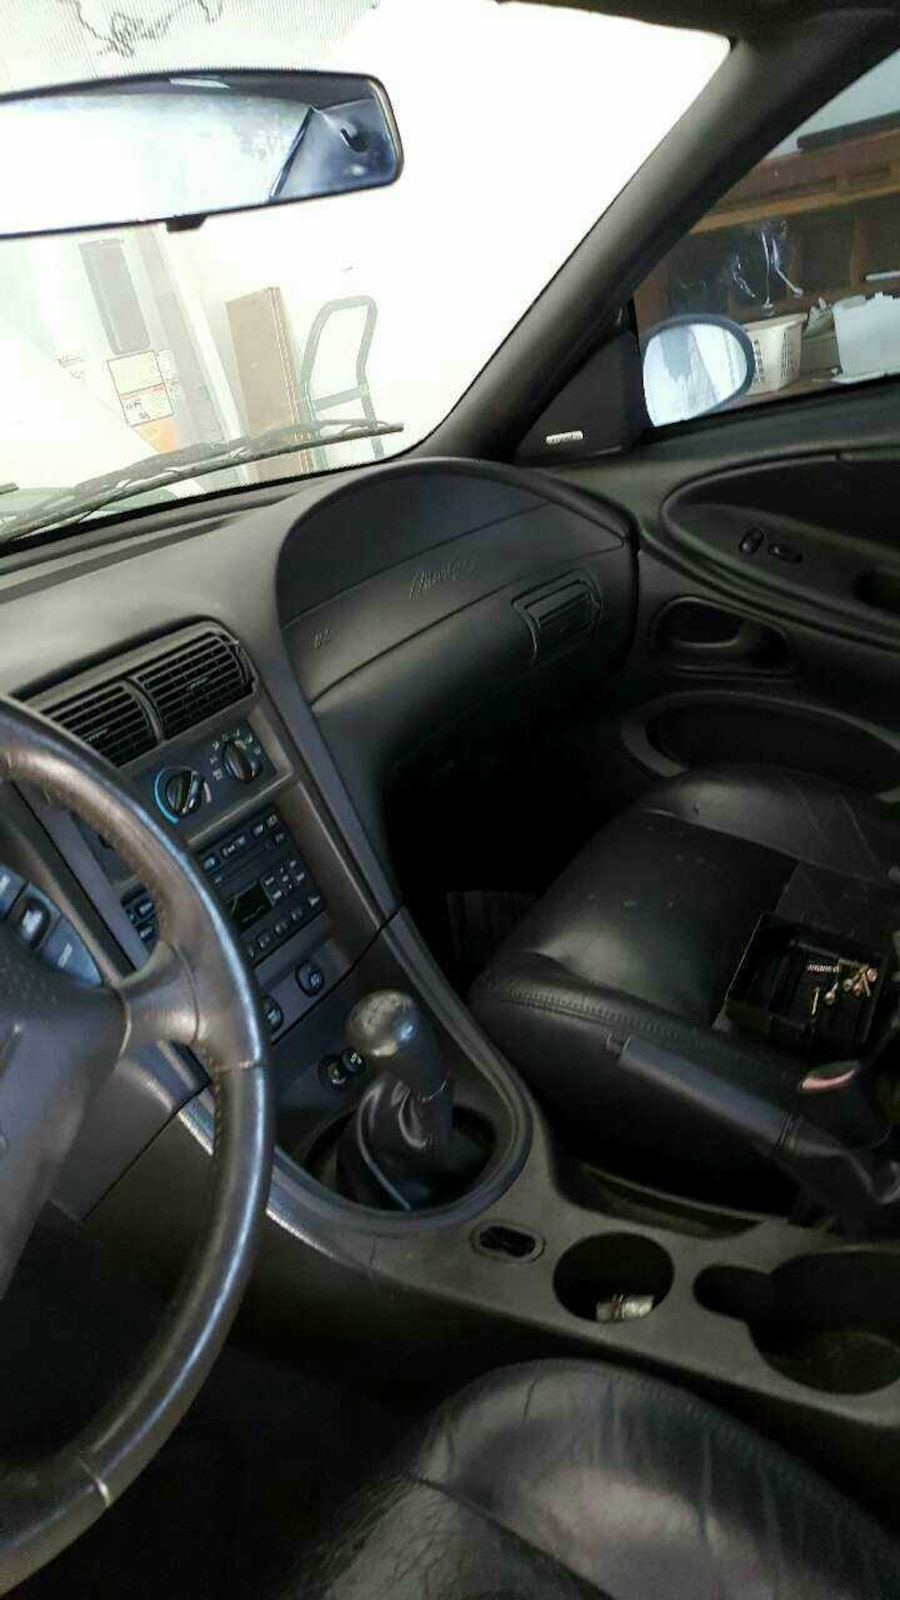 used no motor 2002 mustang gt in west palm beach. Black Bedroom Furniture Sets. Home Design Ideas